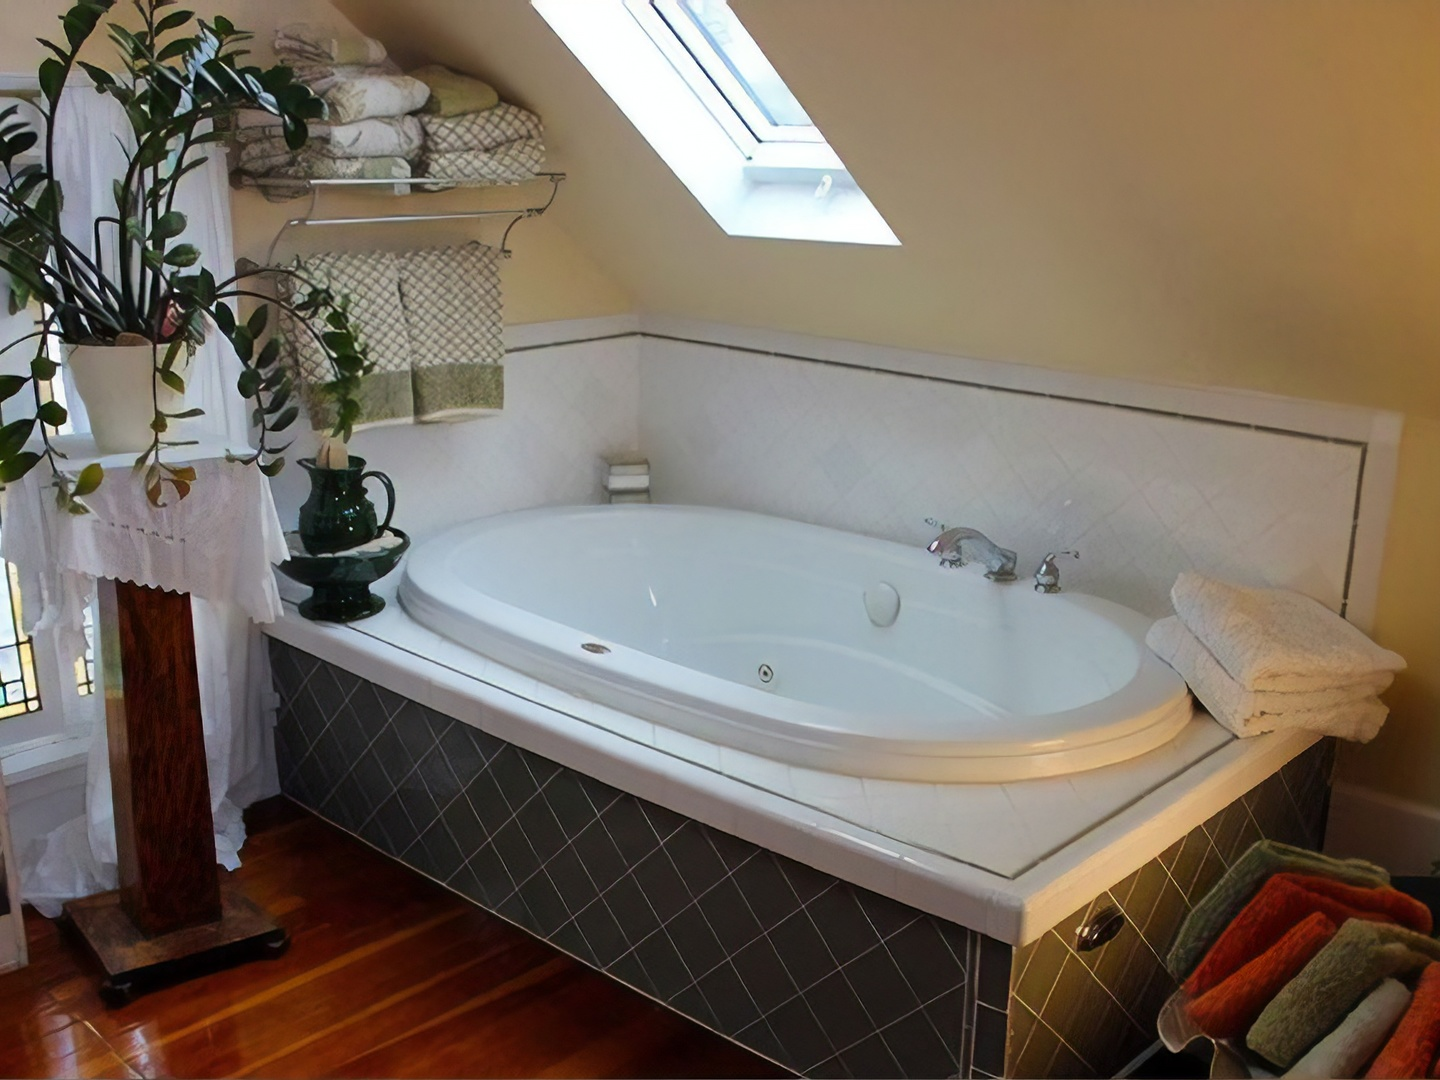 A white tub sitting next to a sink at Como Lake Bed and Breakfast.